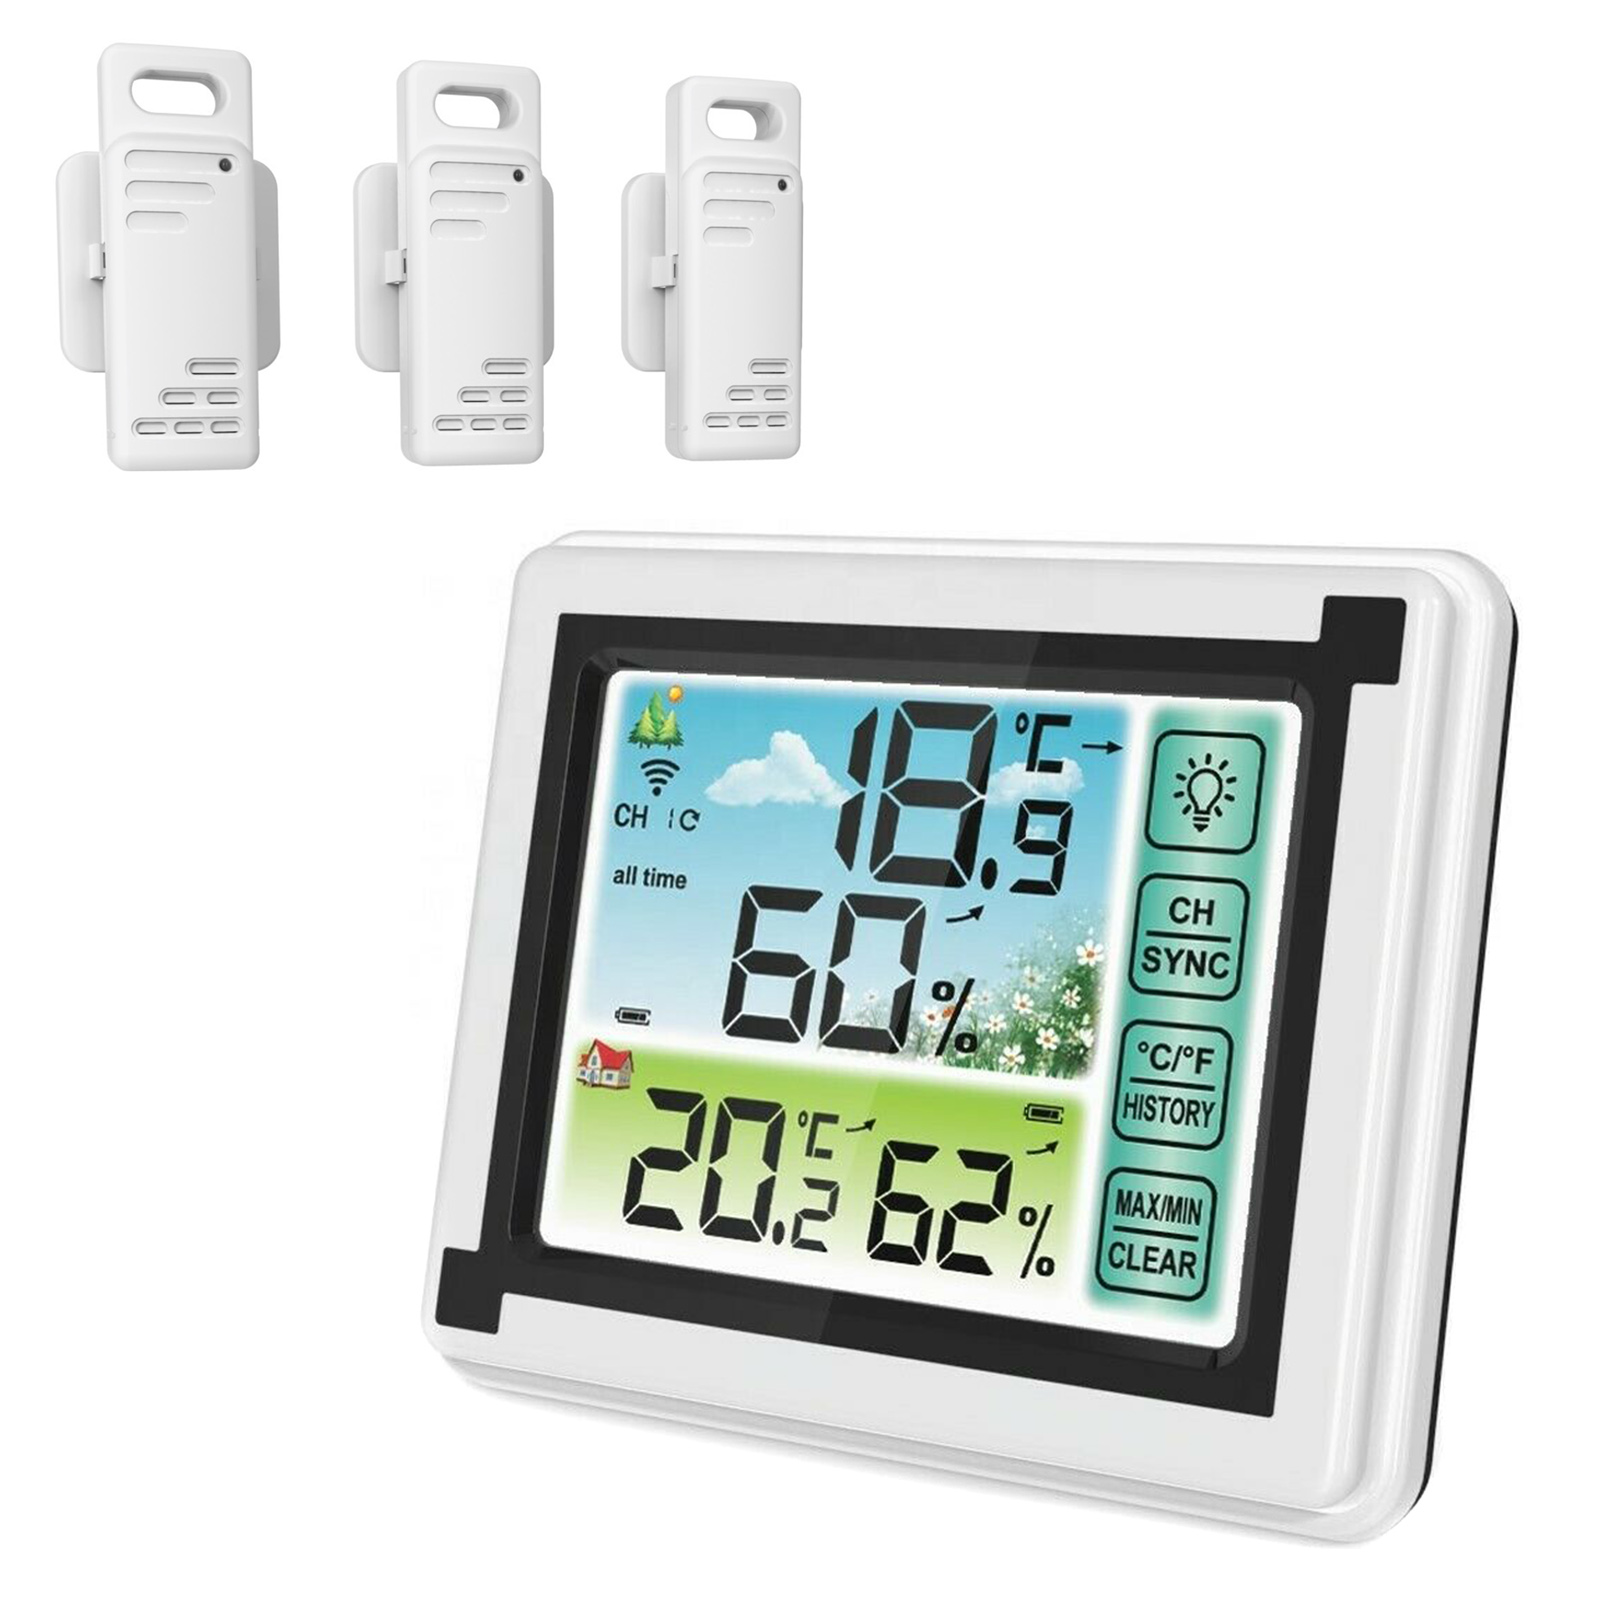 LCD Weather Station Digital Thermometer Hygrometer Indoor Outdoor Temperature Monitoring Device _WK